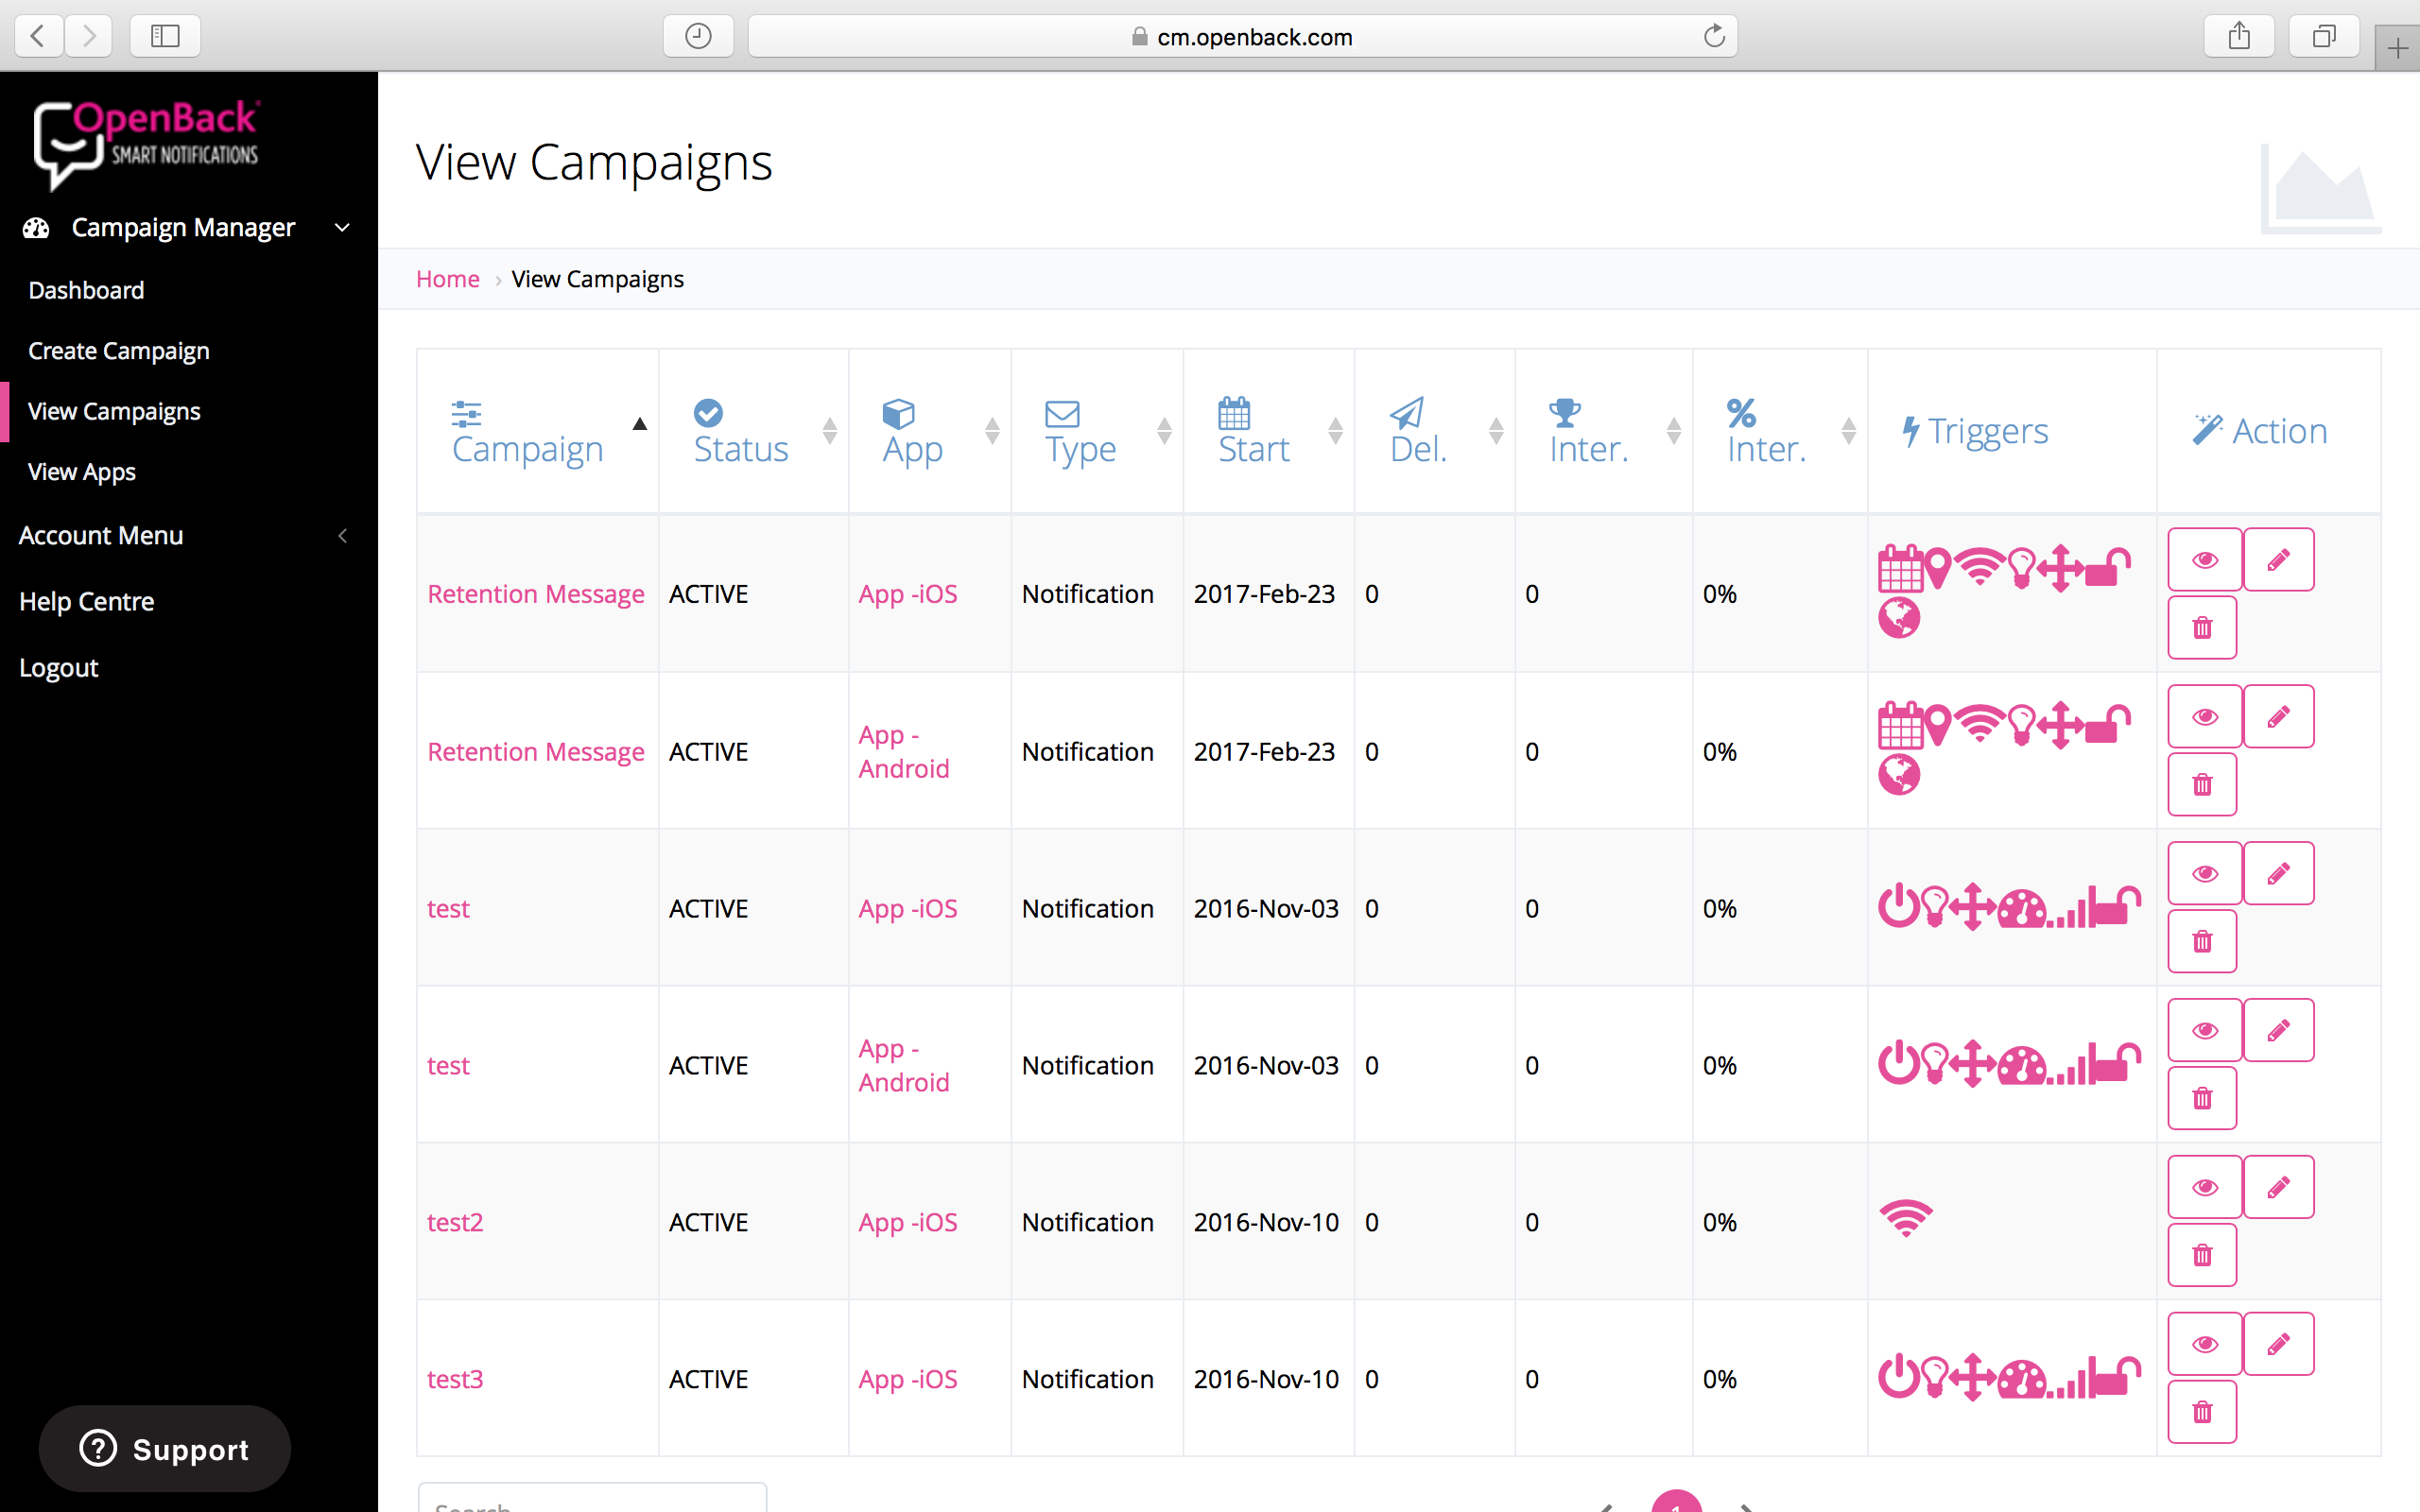 View campaigns